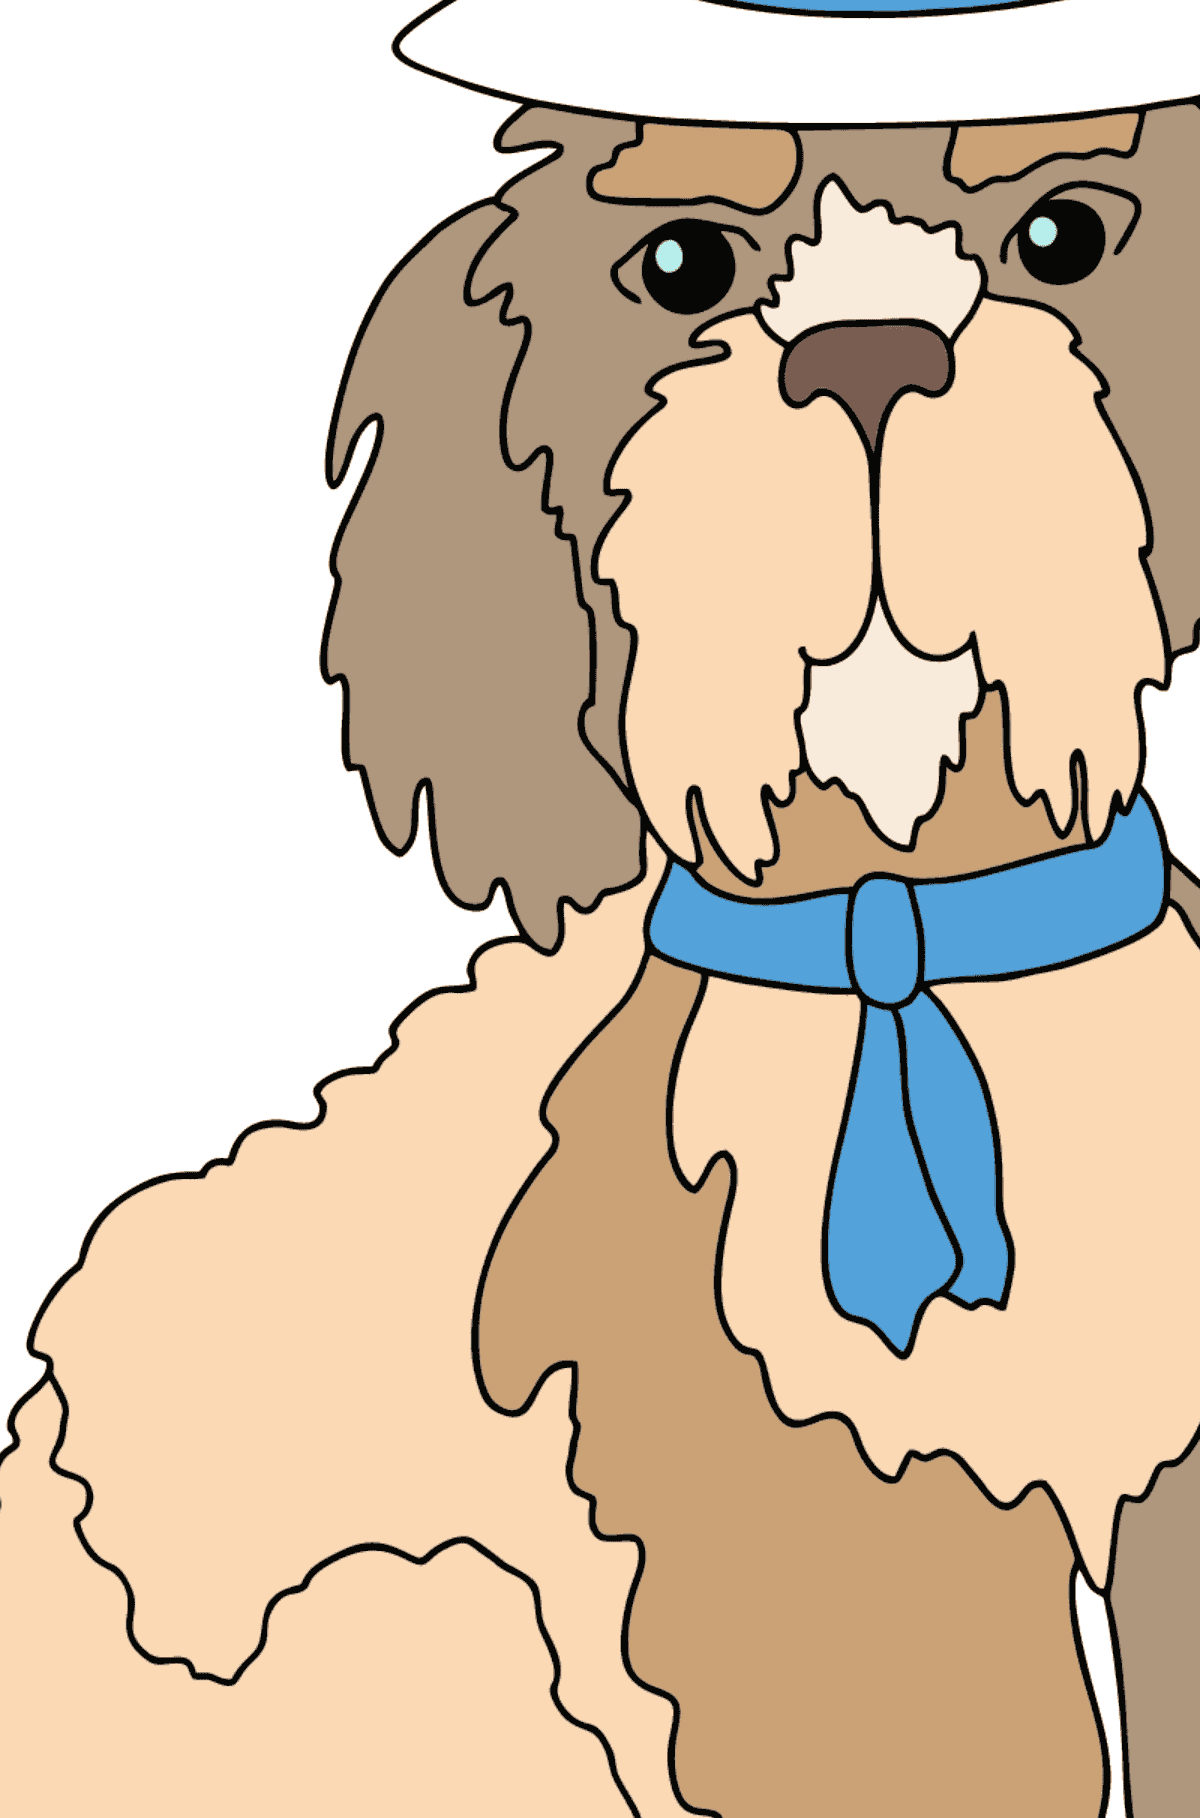 Coloring Page - A Dog in a Beautiful Hat for Kids  - Color by Number Substraction